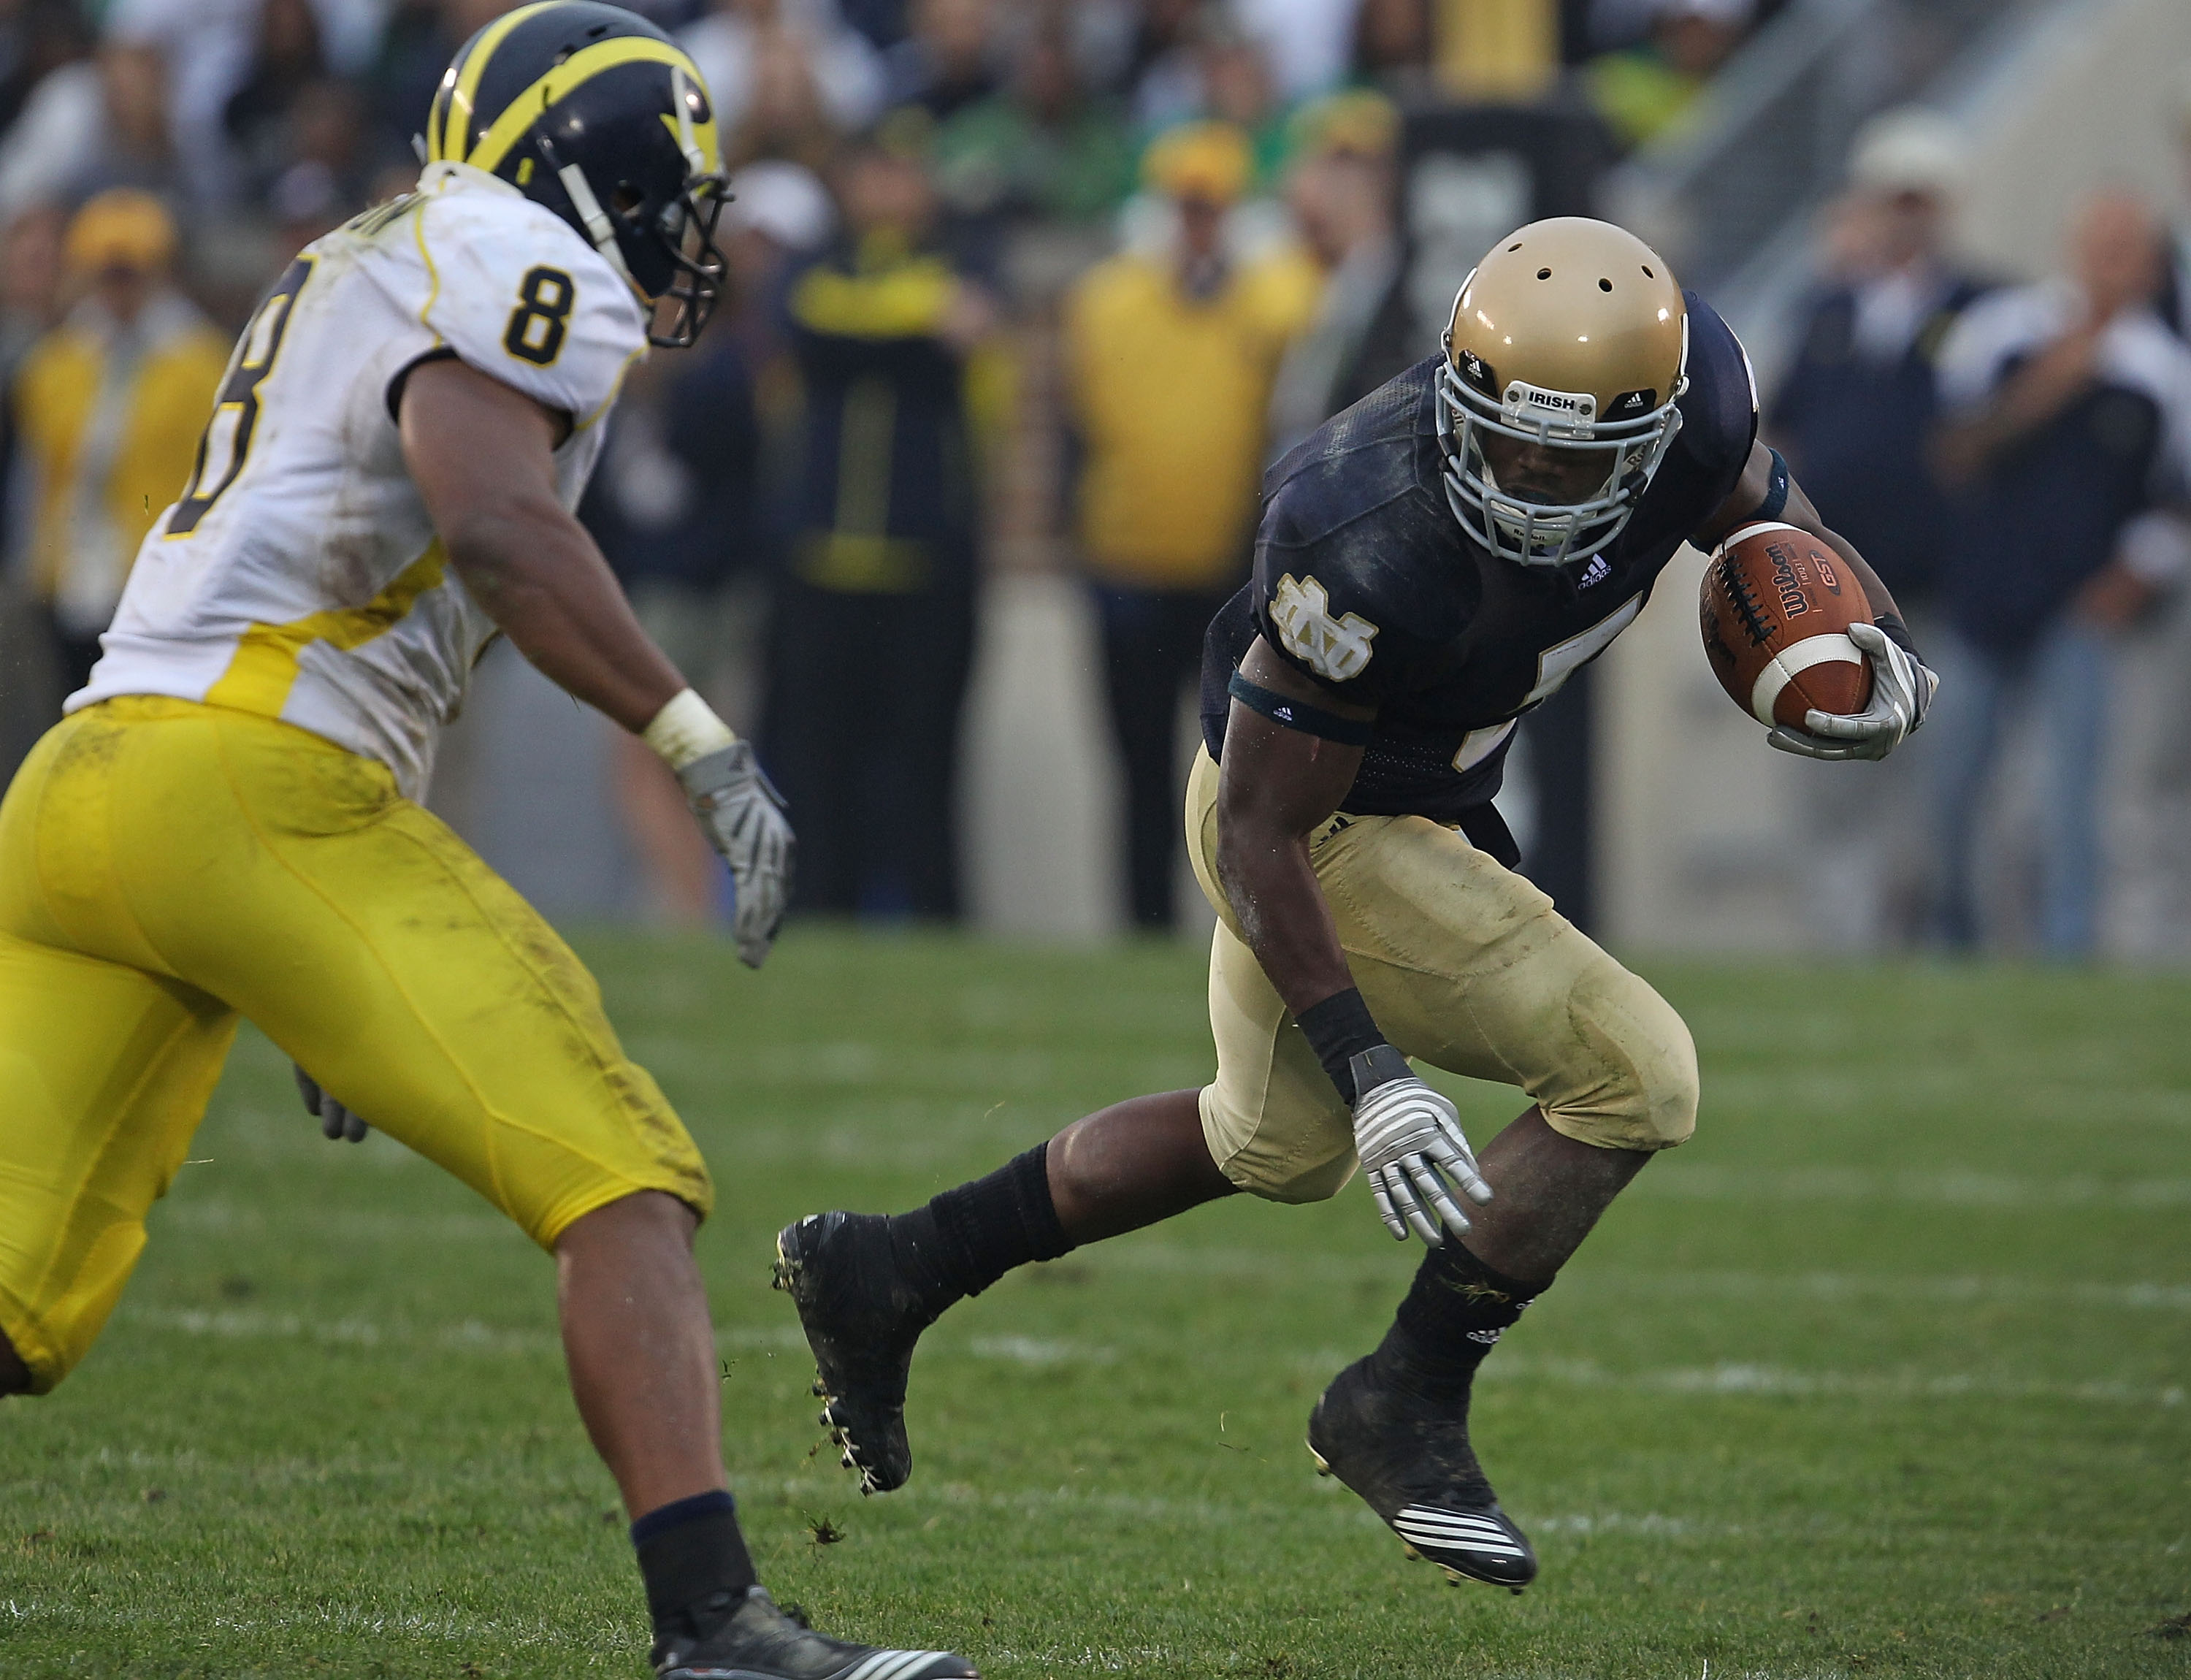 SOUTH BEND, IN - SEPTEMBER 11: Armando Allen, Jr. #5 of the Notre Dame Fighting Irish runs as Jonas Mouton #8 of the Michigan Wolverines closes in at Notre Dame Stadium on September 11, 2010 in South Bend, Indiana. Michigan defeated Notre Dame 28-24. (Pho